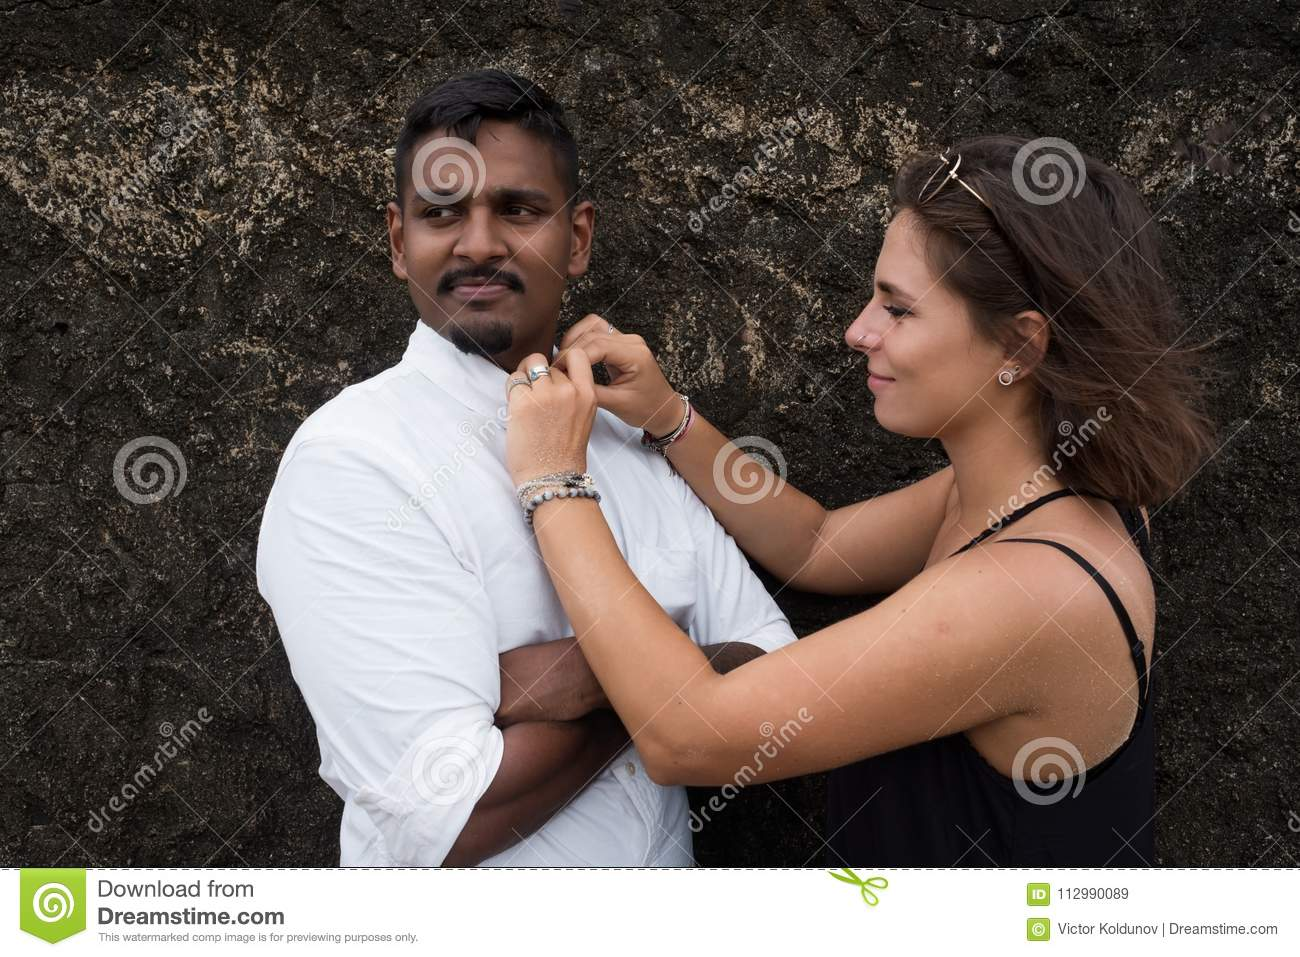 Woman helping her beloved man and fastening buttons on his shirt.